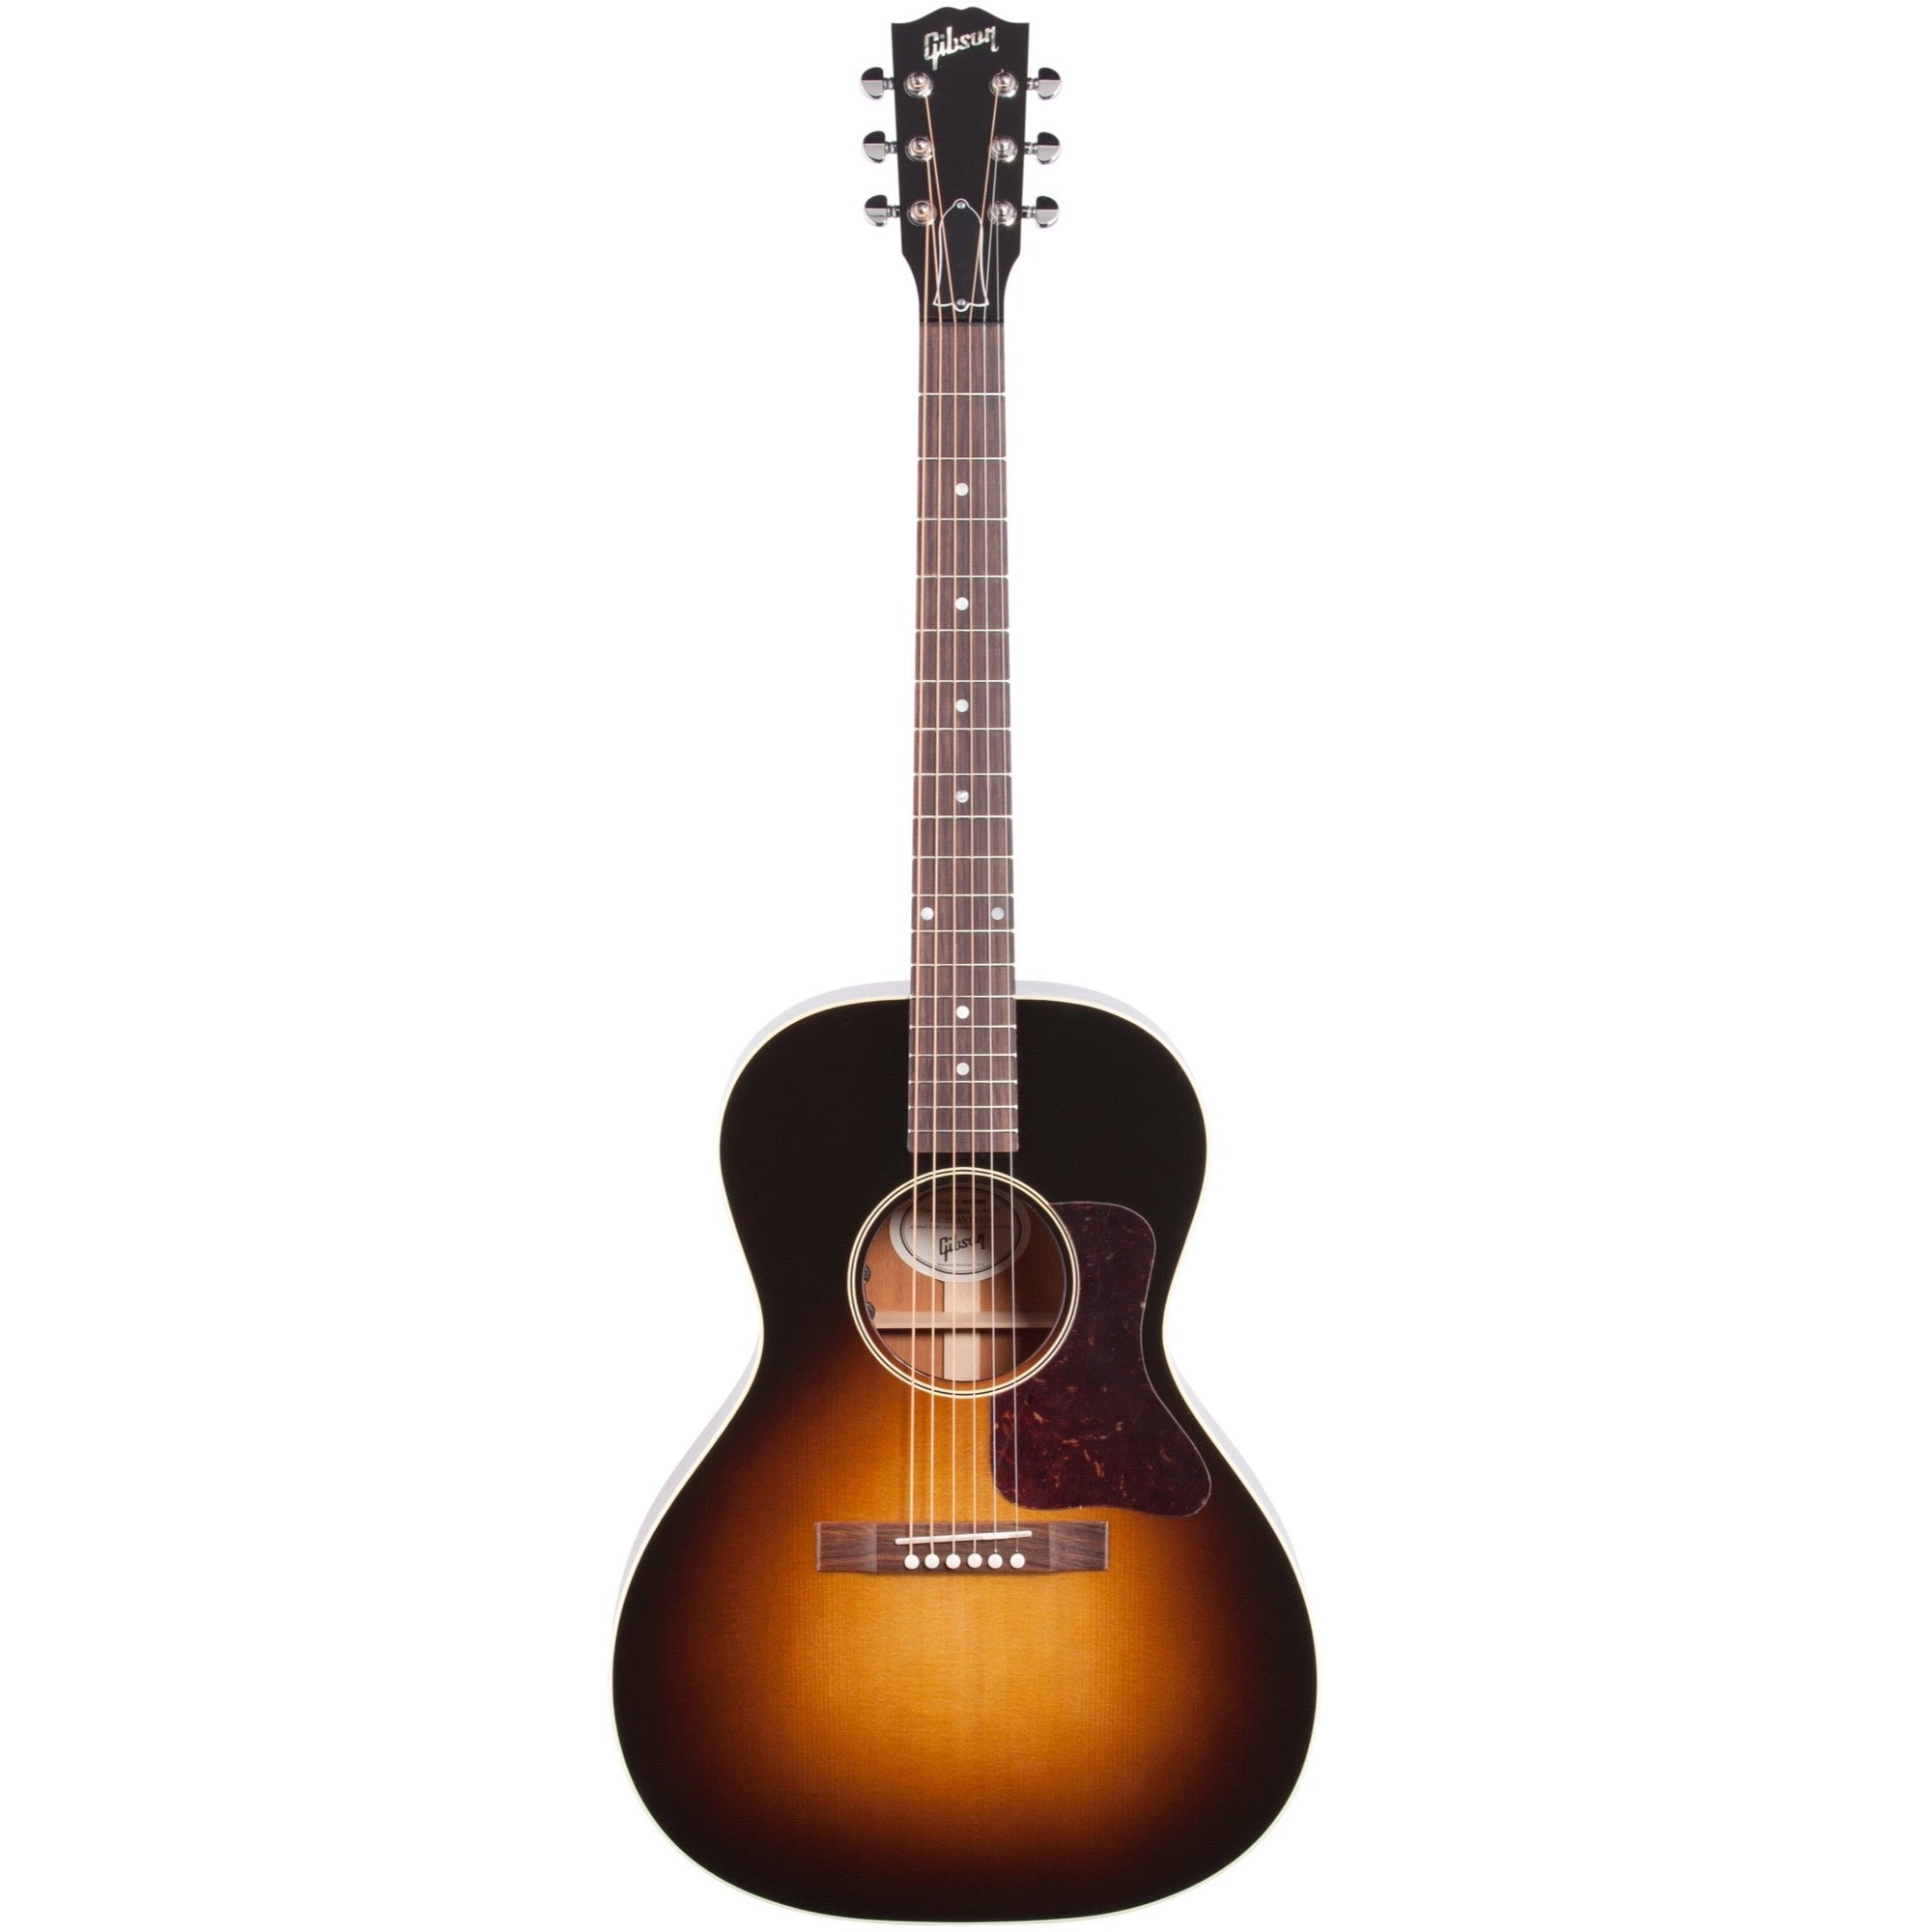 Gibson L-00 Standard Acoustic-Electric Guitar (with Case), Vintage Sunburst